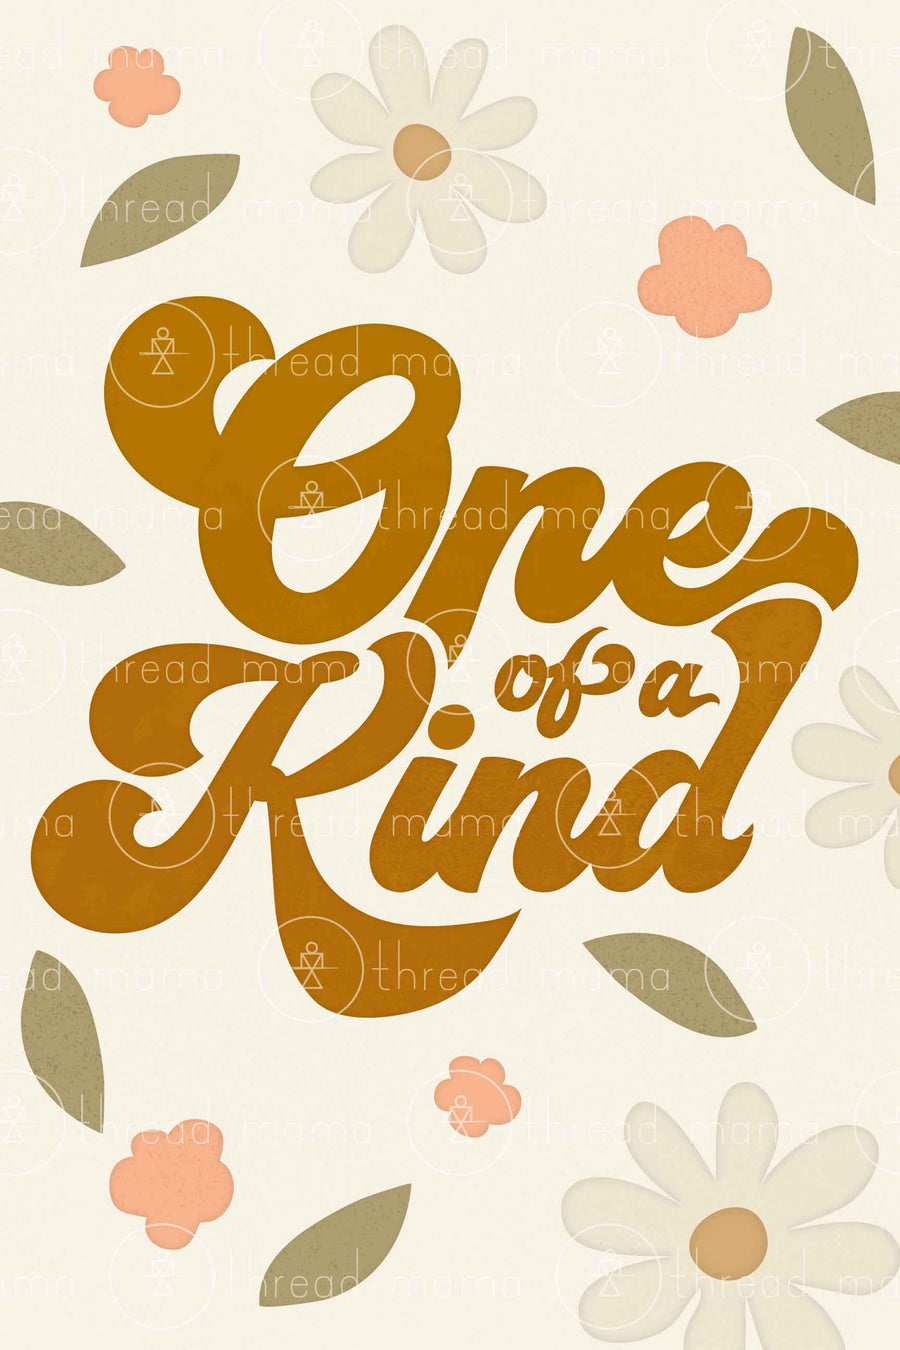 One of a Kind (Printable Poster)